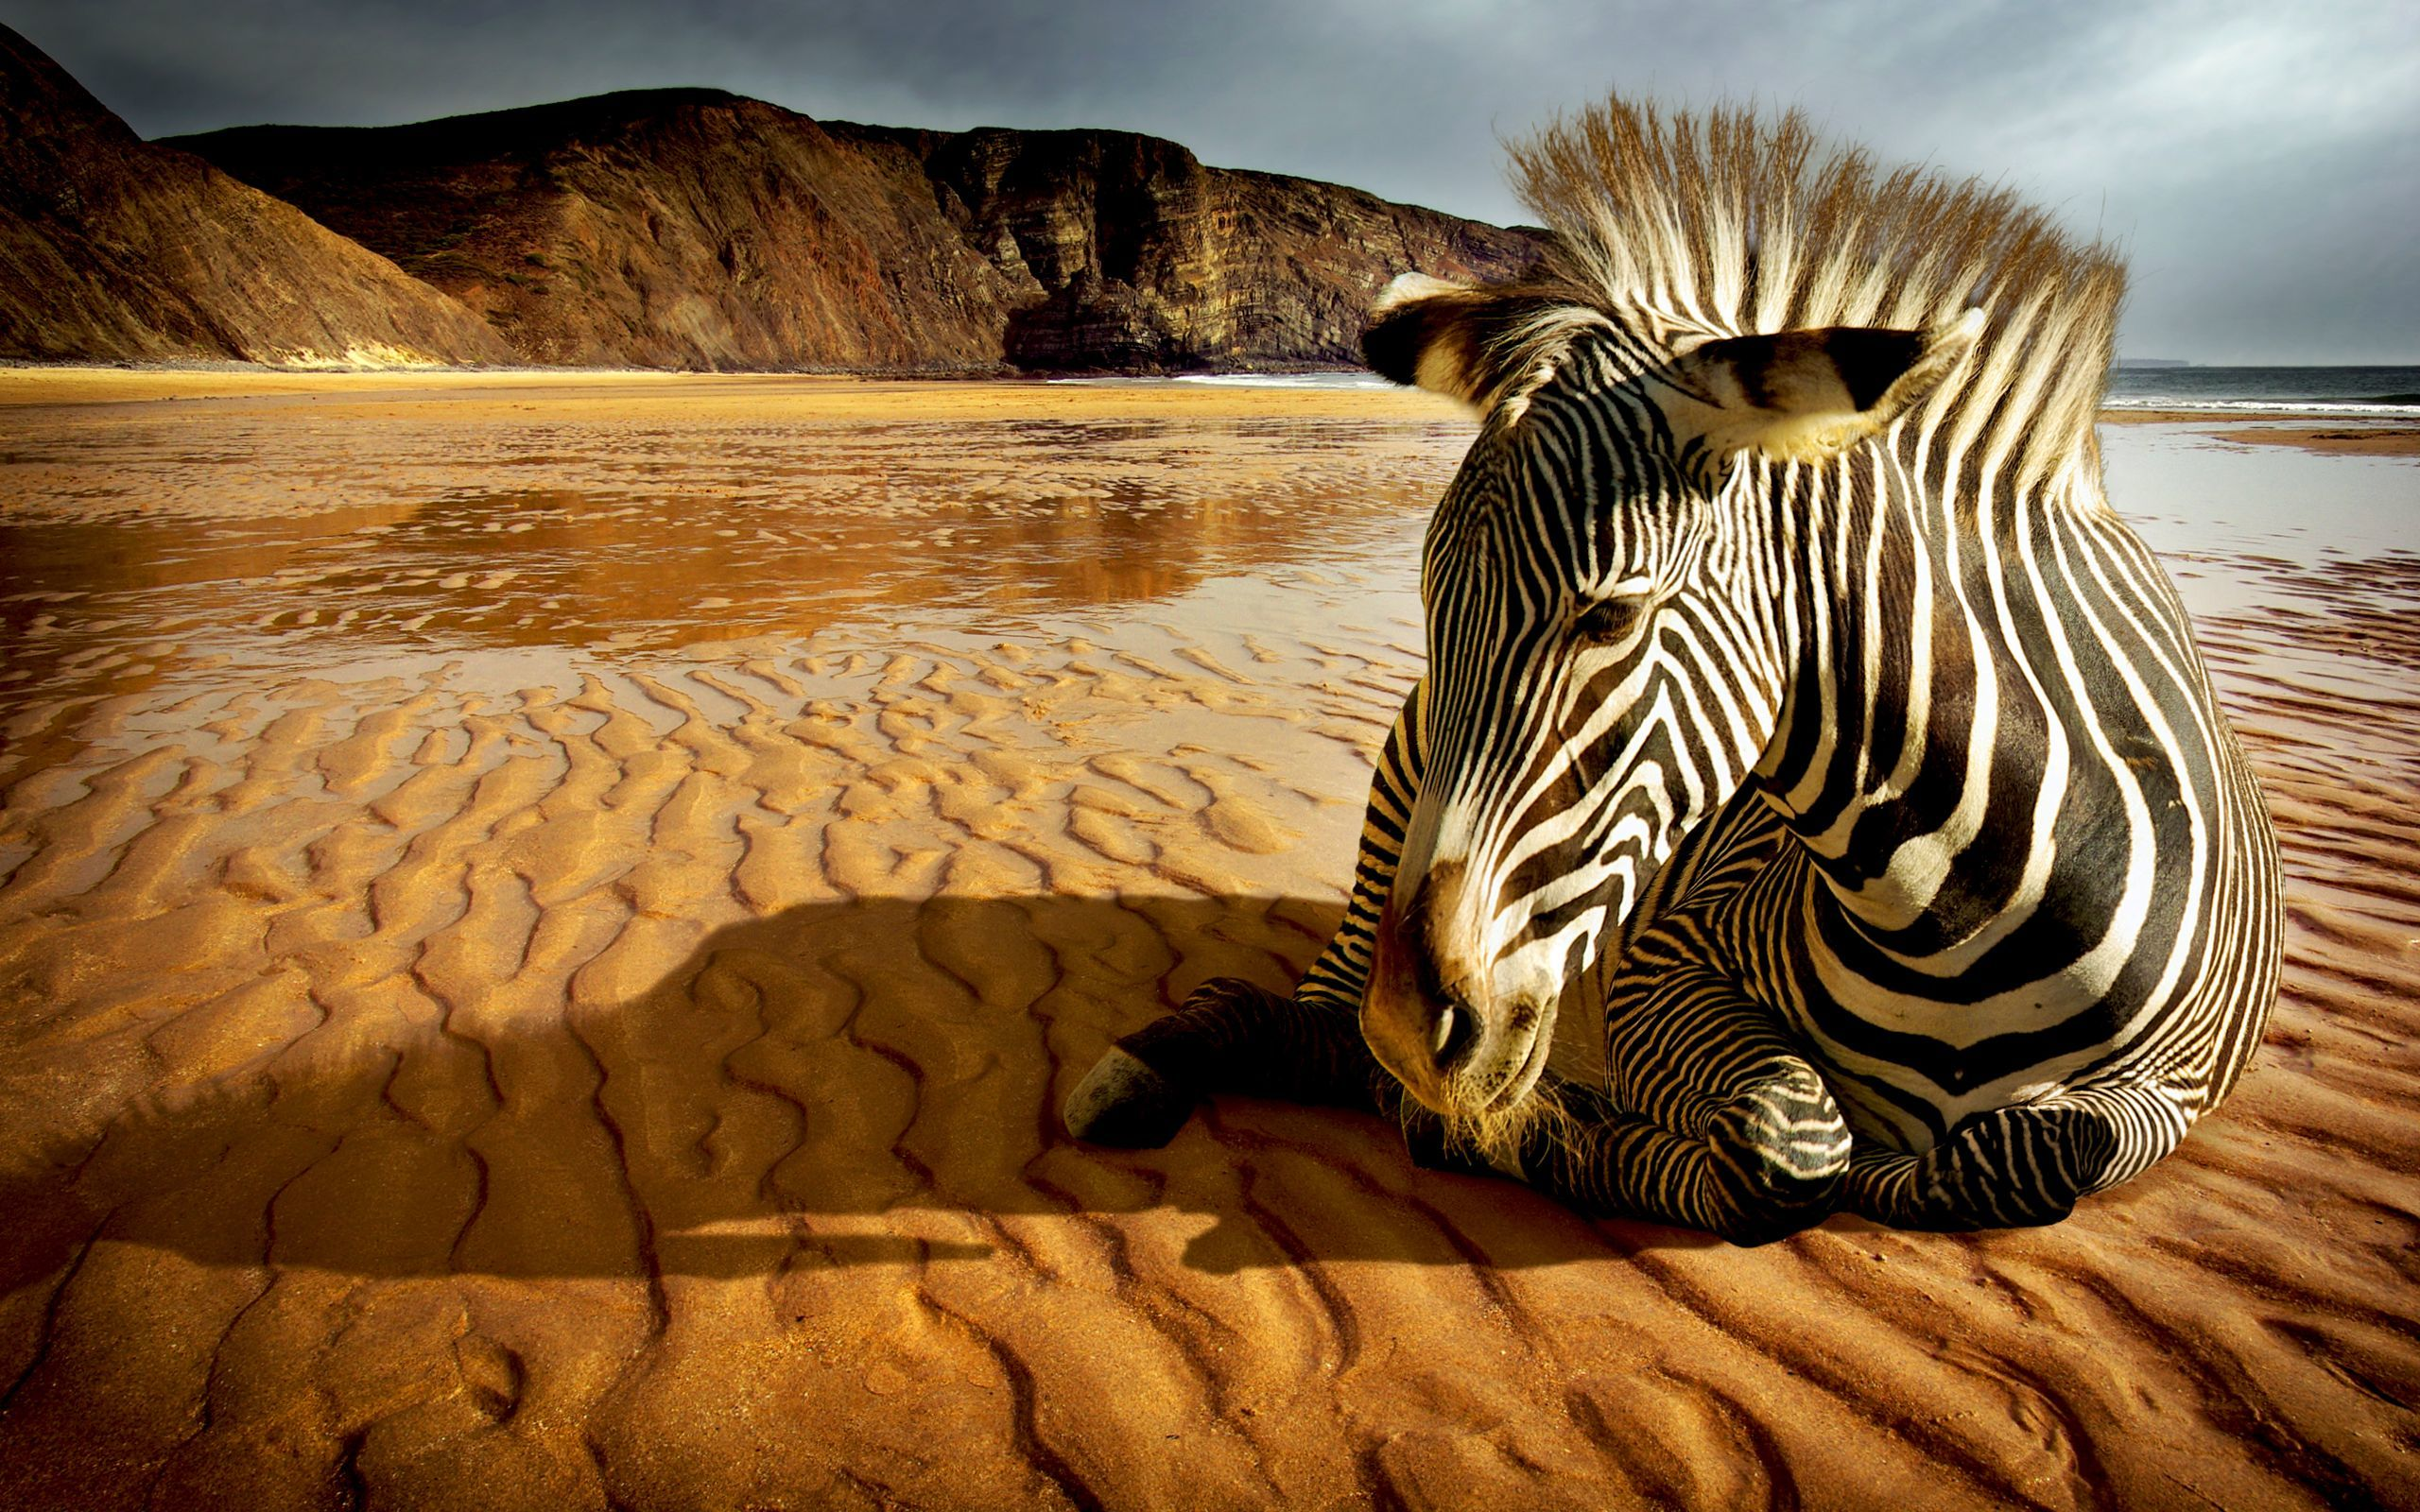 47943 download wallpaper Animals, Landscape, Zebra screensavers and pictures for free